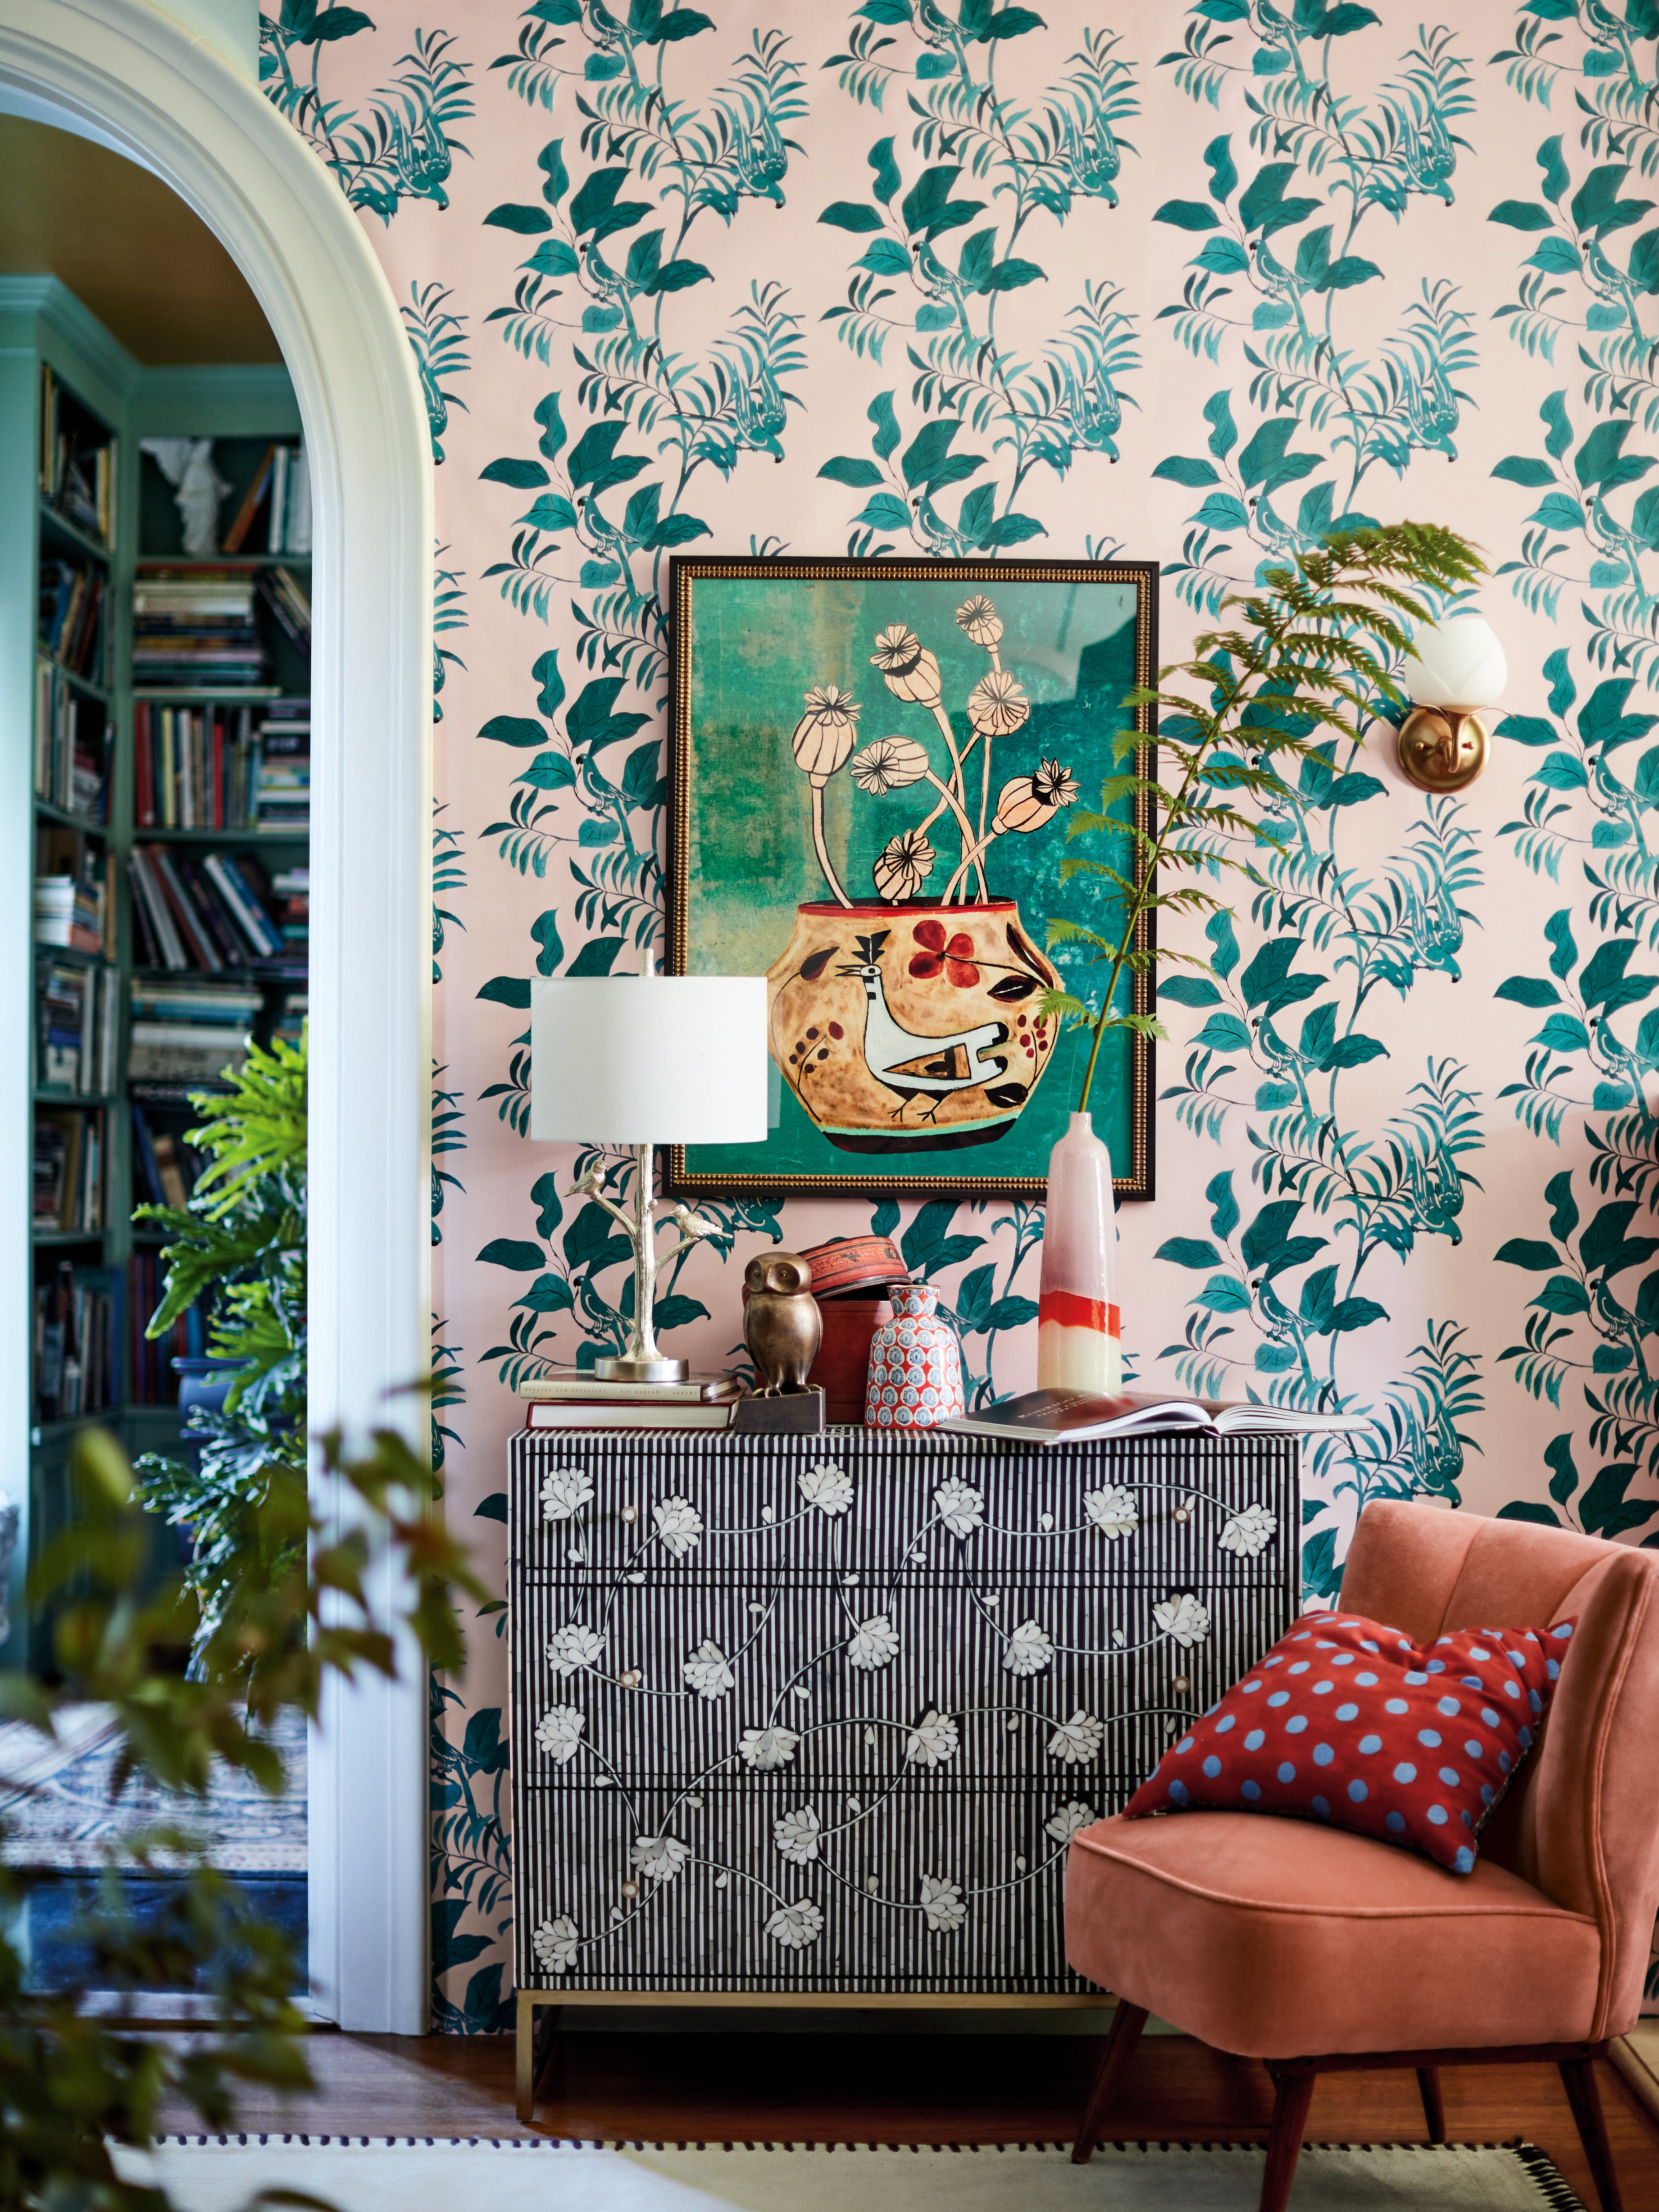 The Only 3 Spring Decor Trends You Need to Know, According to Anthropologie